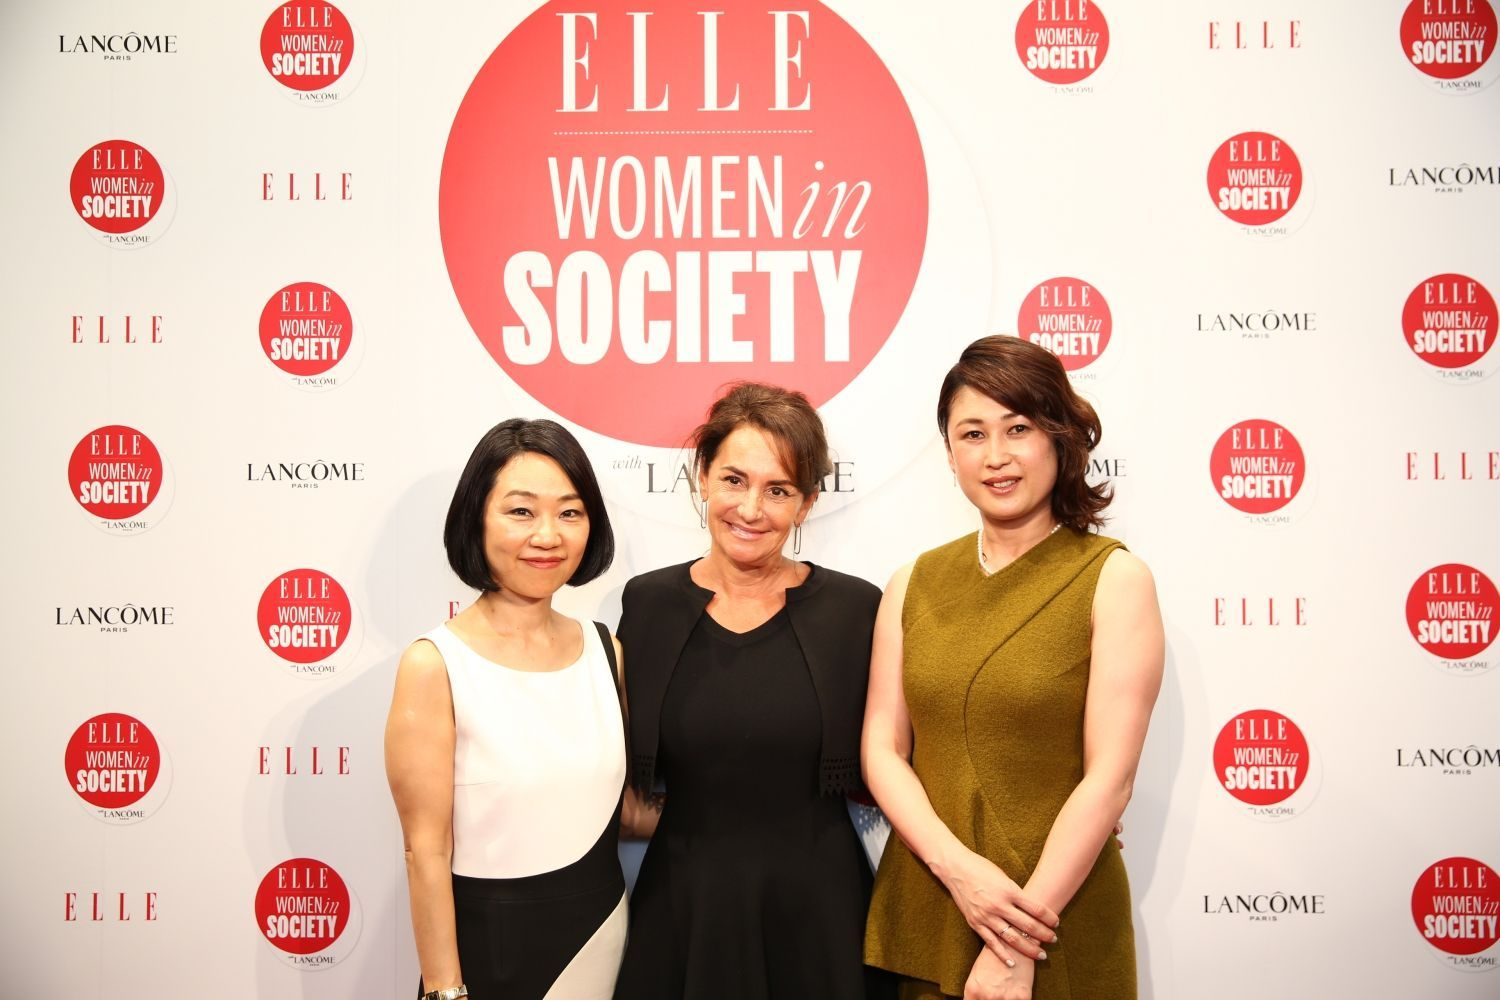 TSUK1227 Akiko Mori (ELLE Japan Publisher) - Constance Benque (ELLE France and International CEO) - Kanako Sakai (ELLE Japon Editor in Chief)